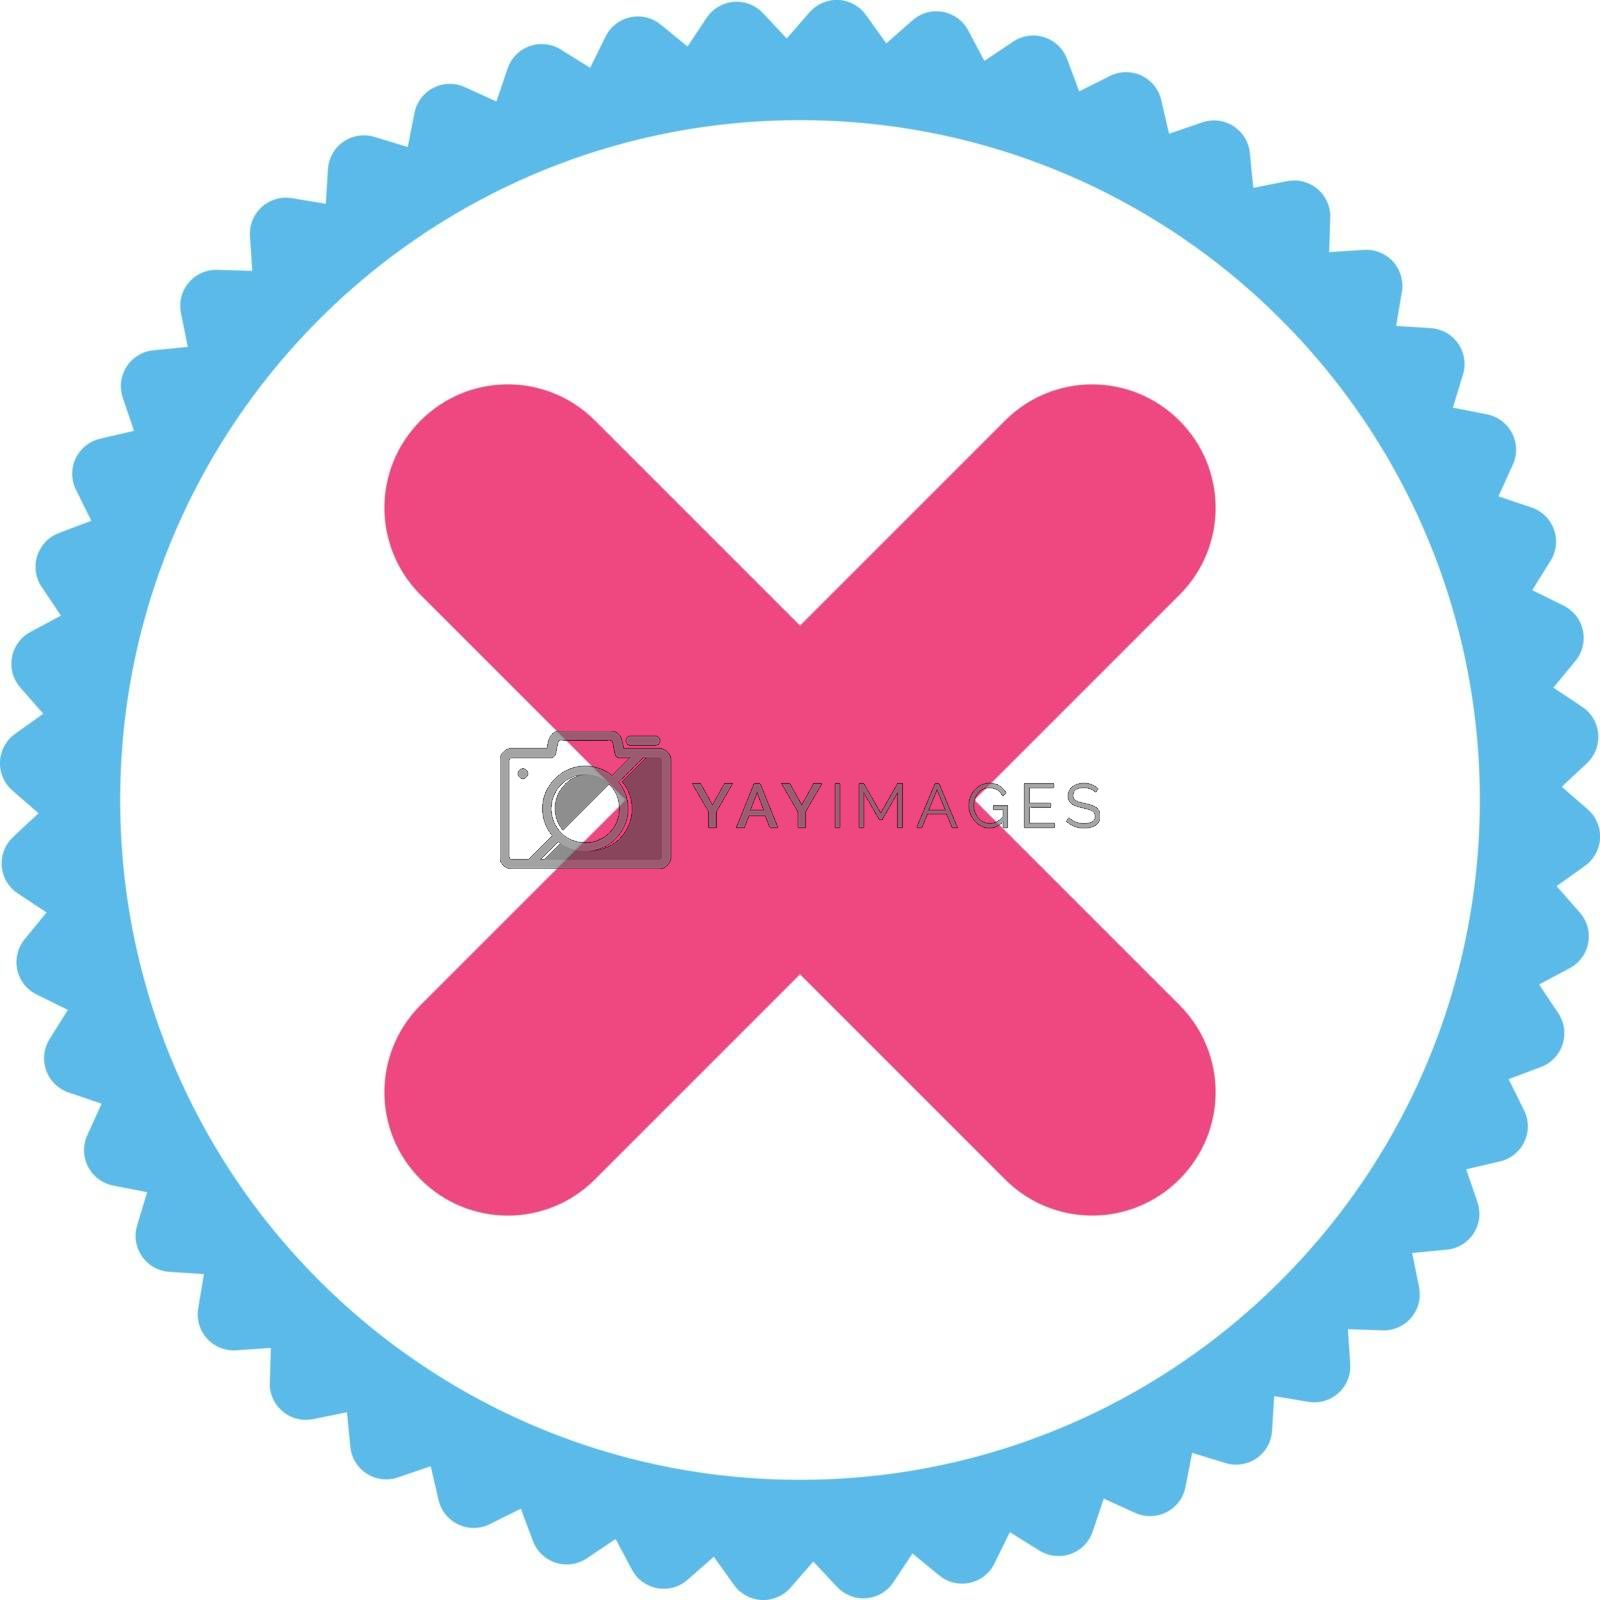 Cancel flat pink and blue colors round stamp icon by Aha-Soft